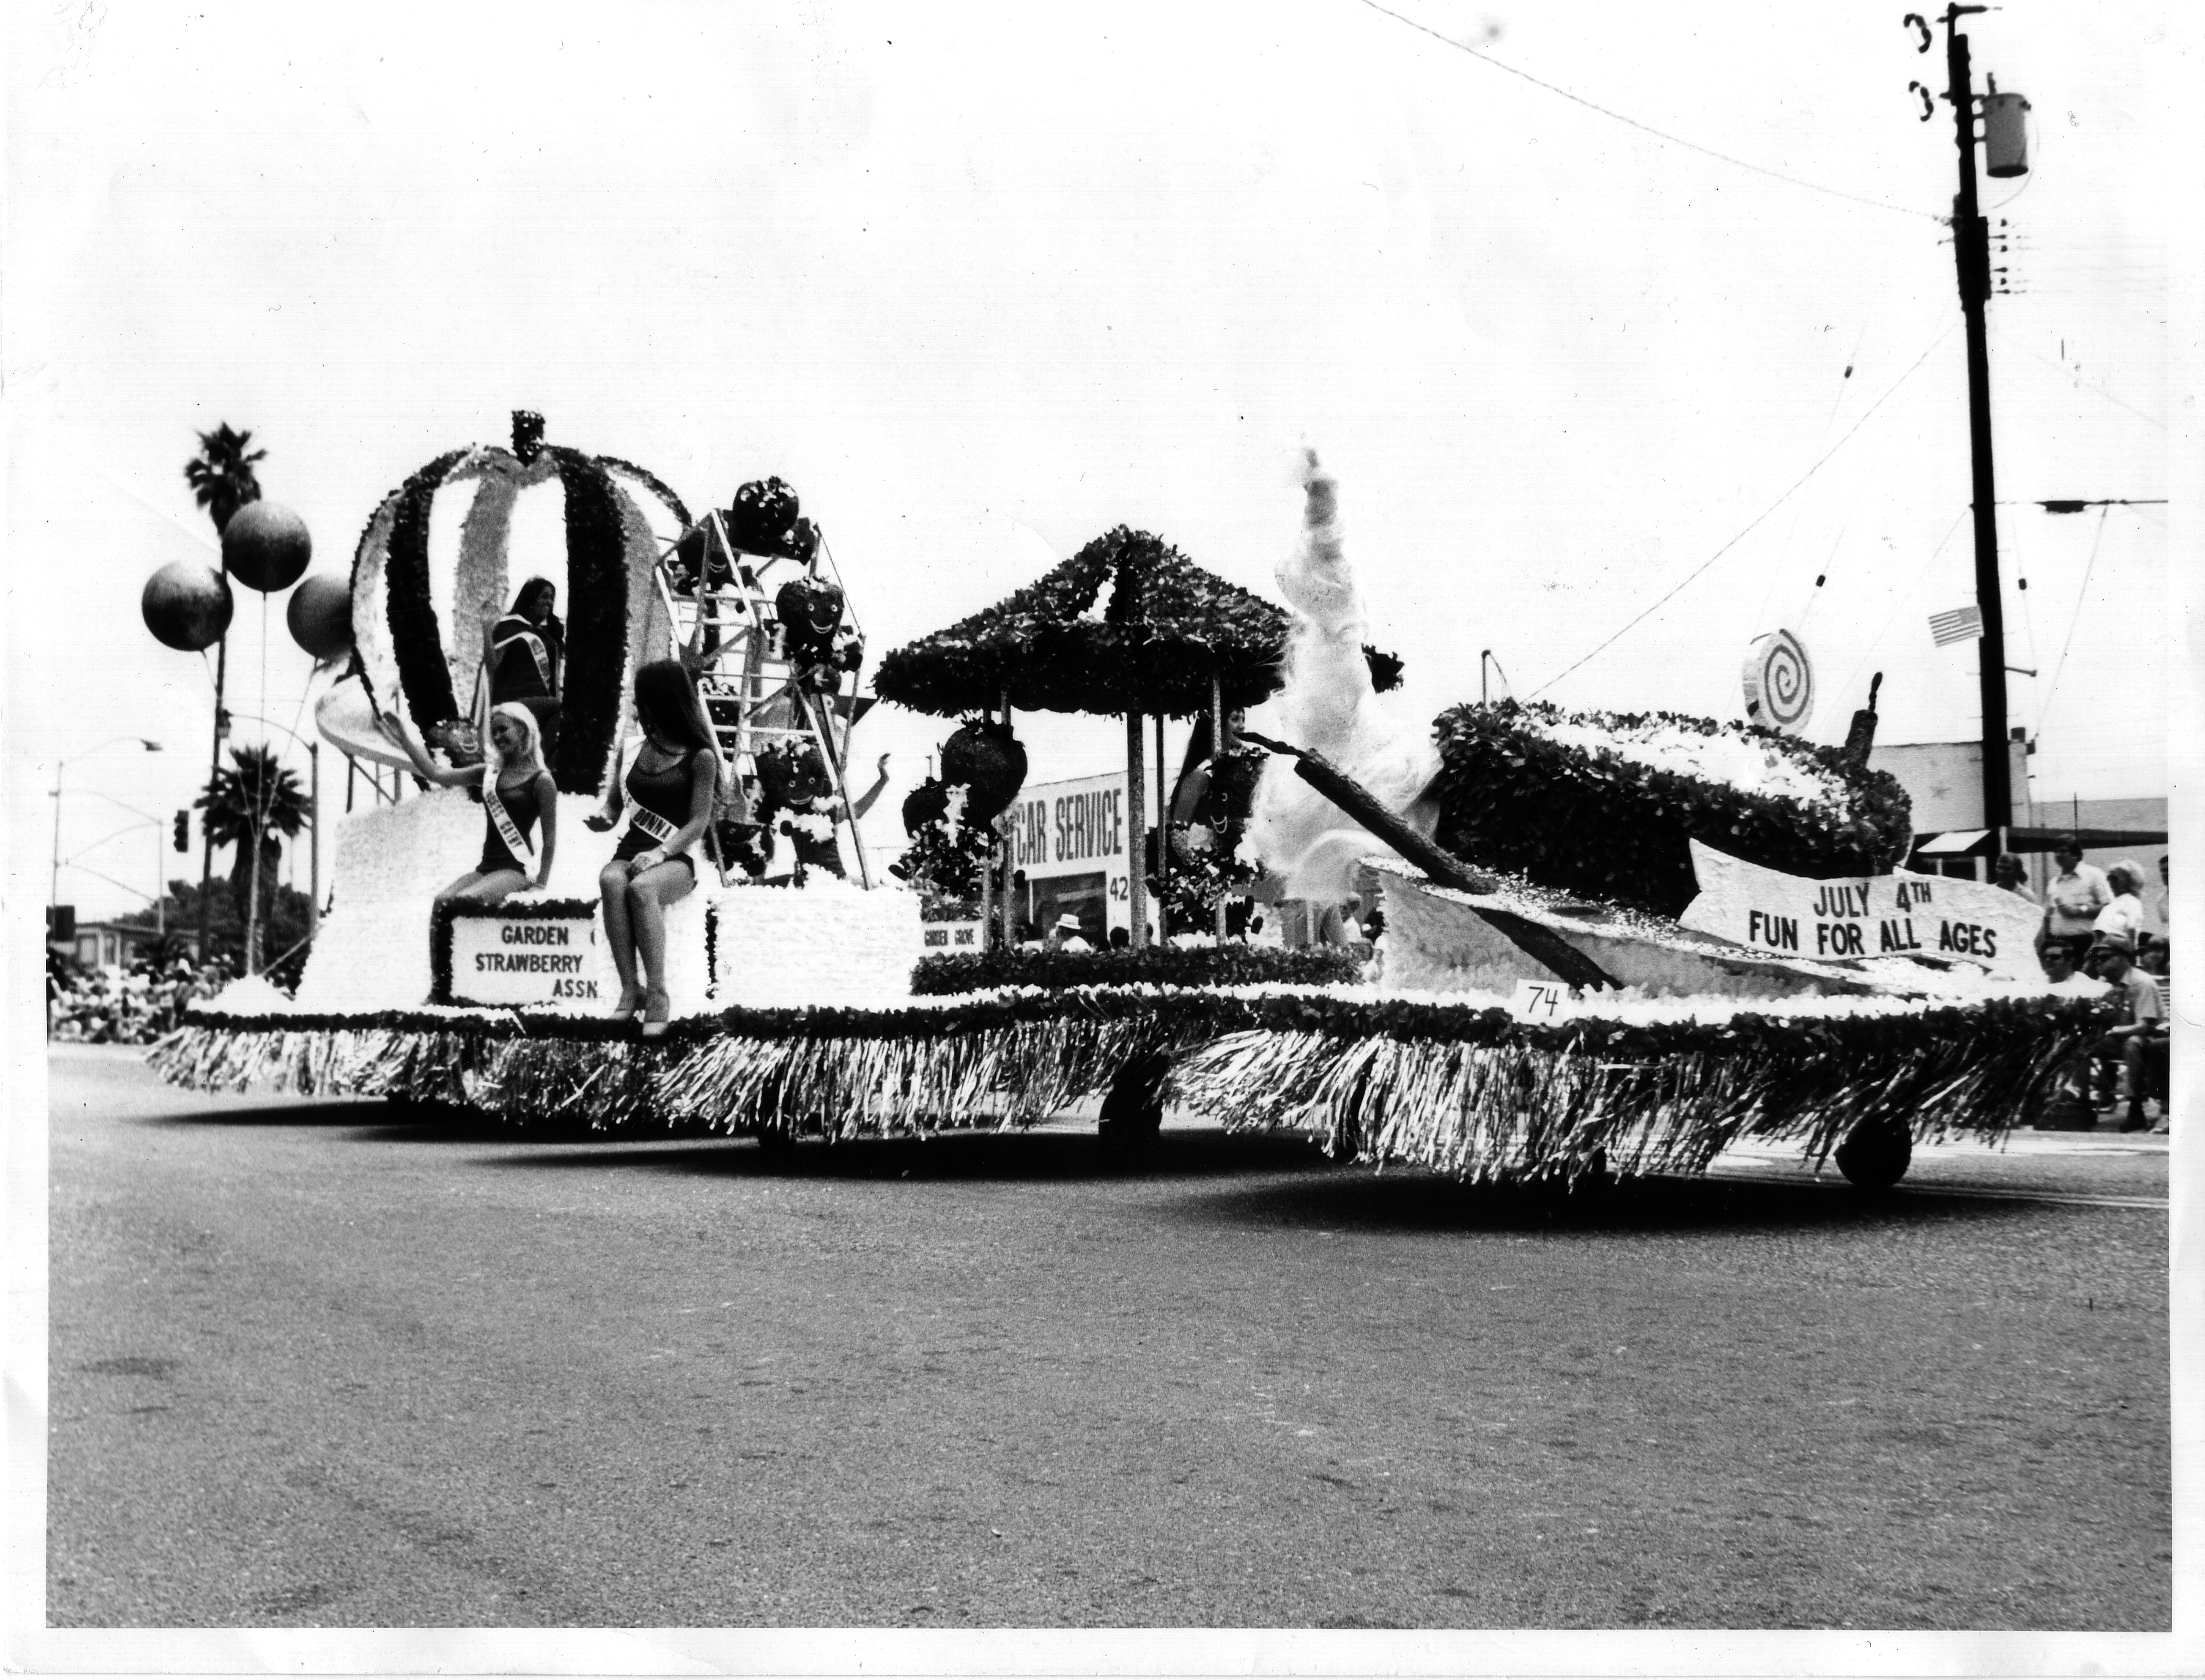 Huntington Beach 4th of July Parade 1973